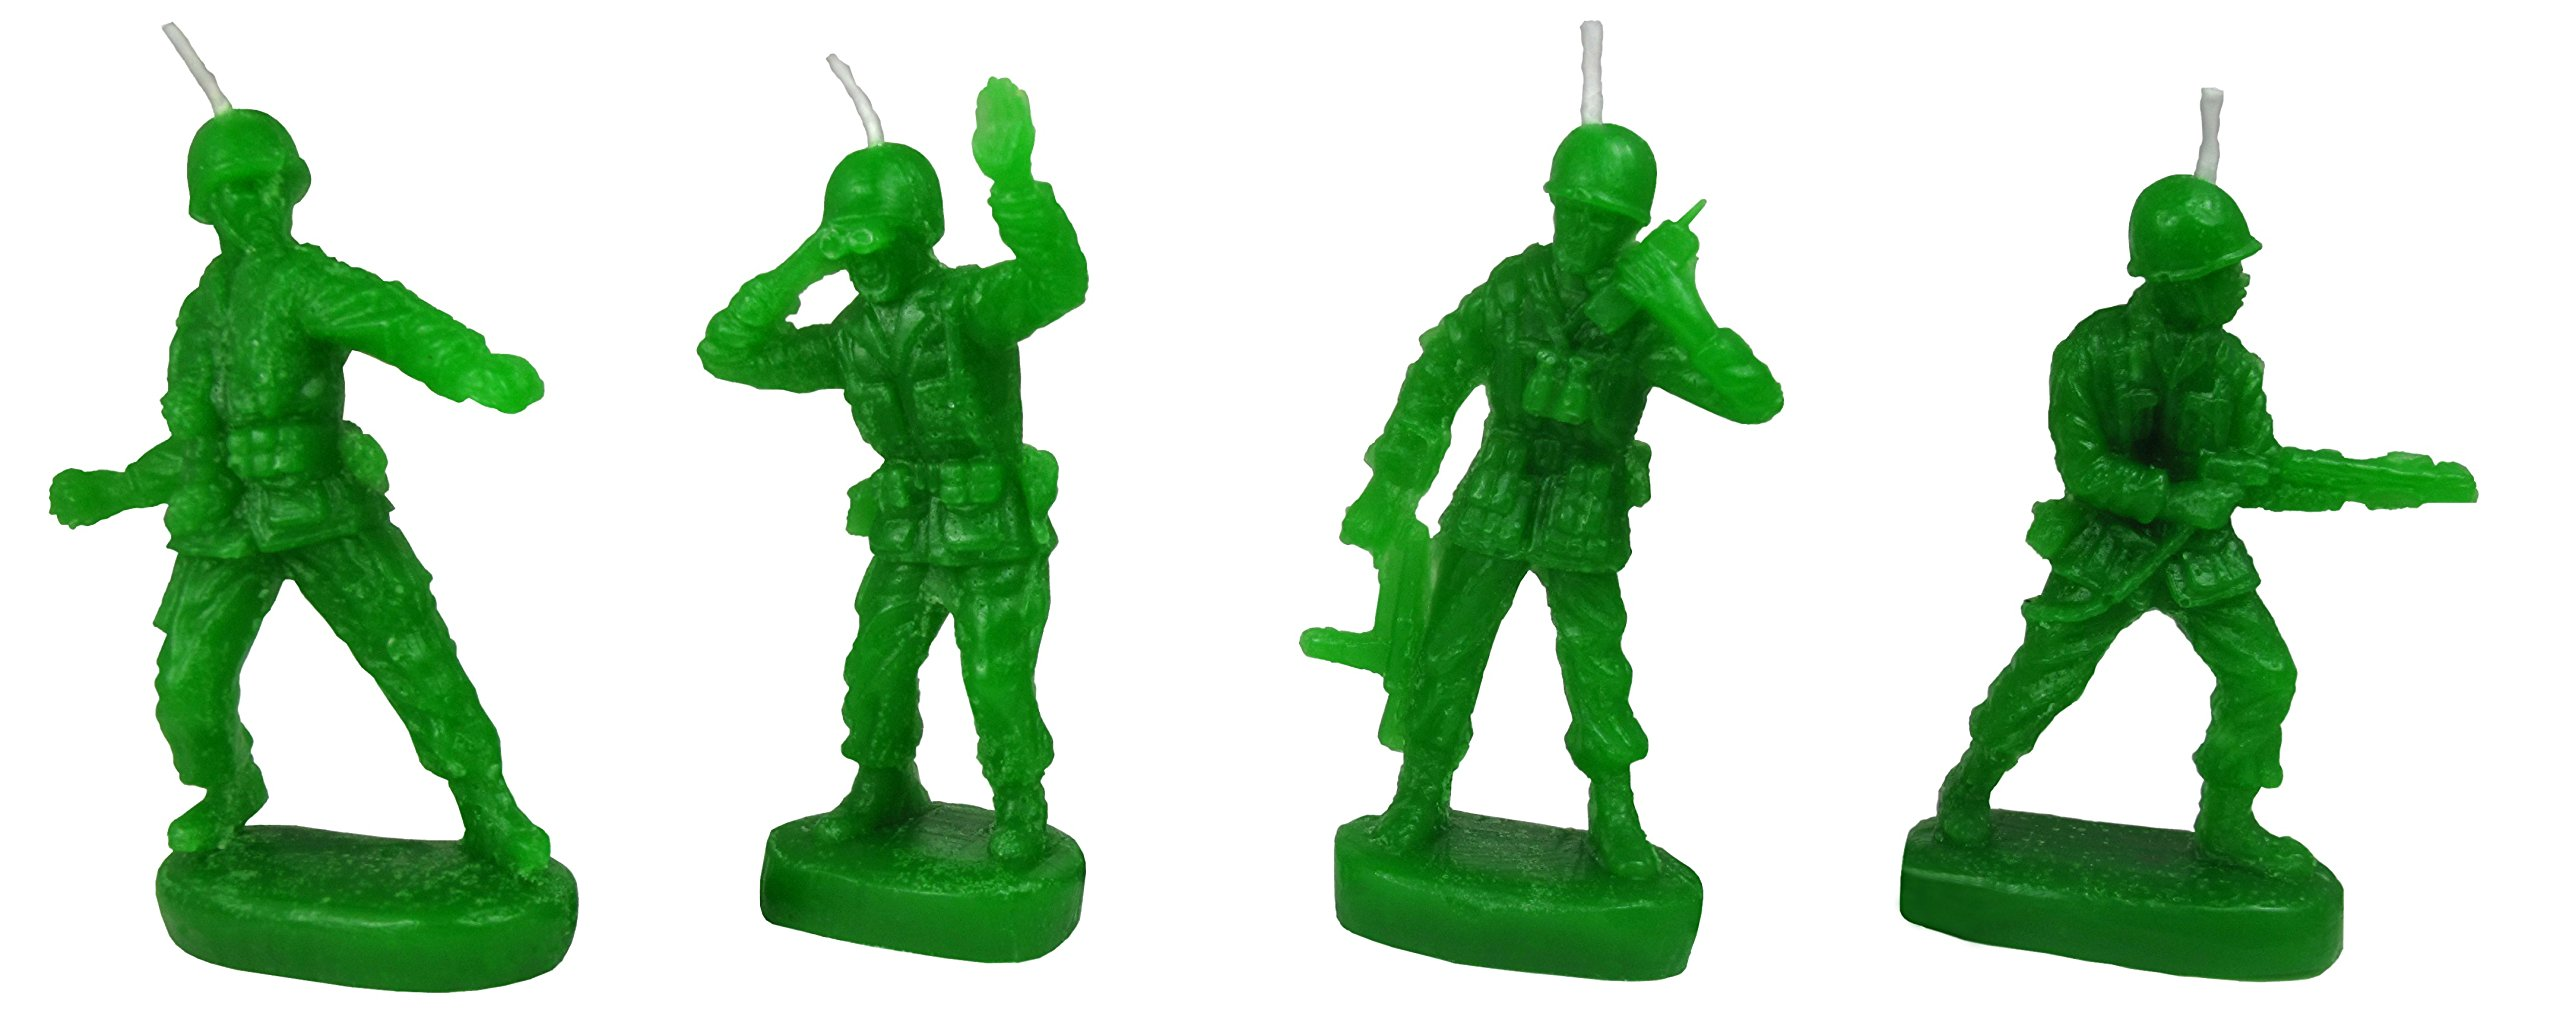 NuOp Design : retro toy soldiers 'Army Men' Military Birthday Candles (set of 4)